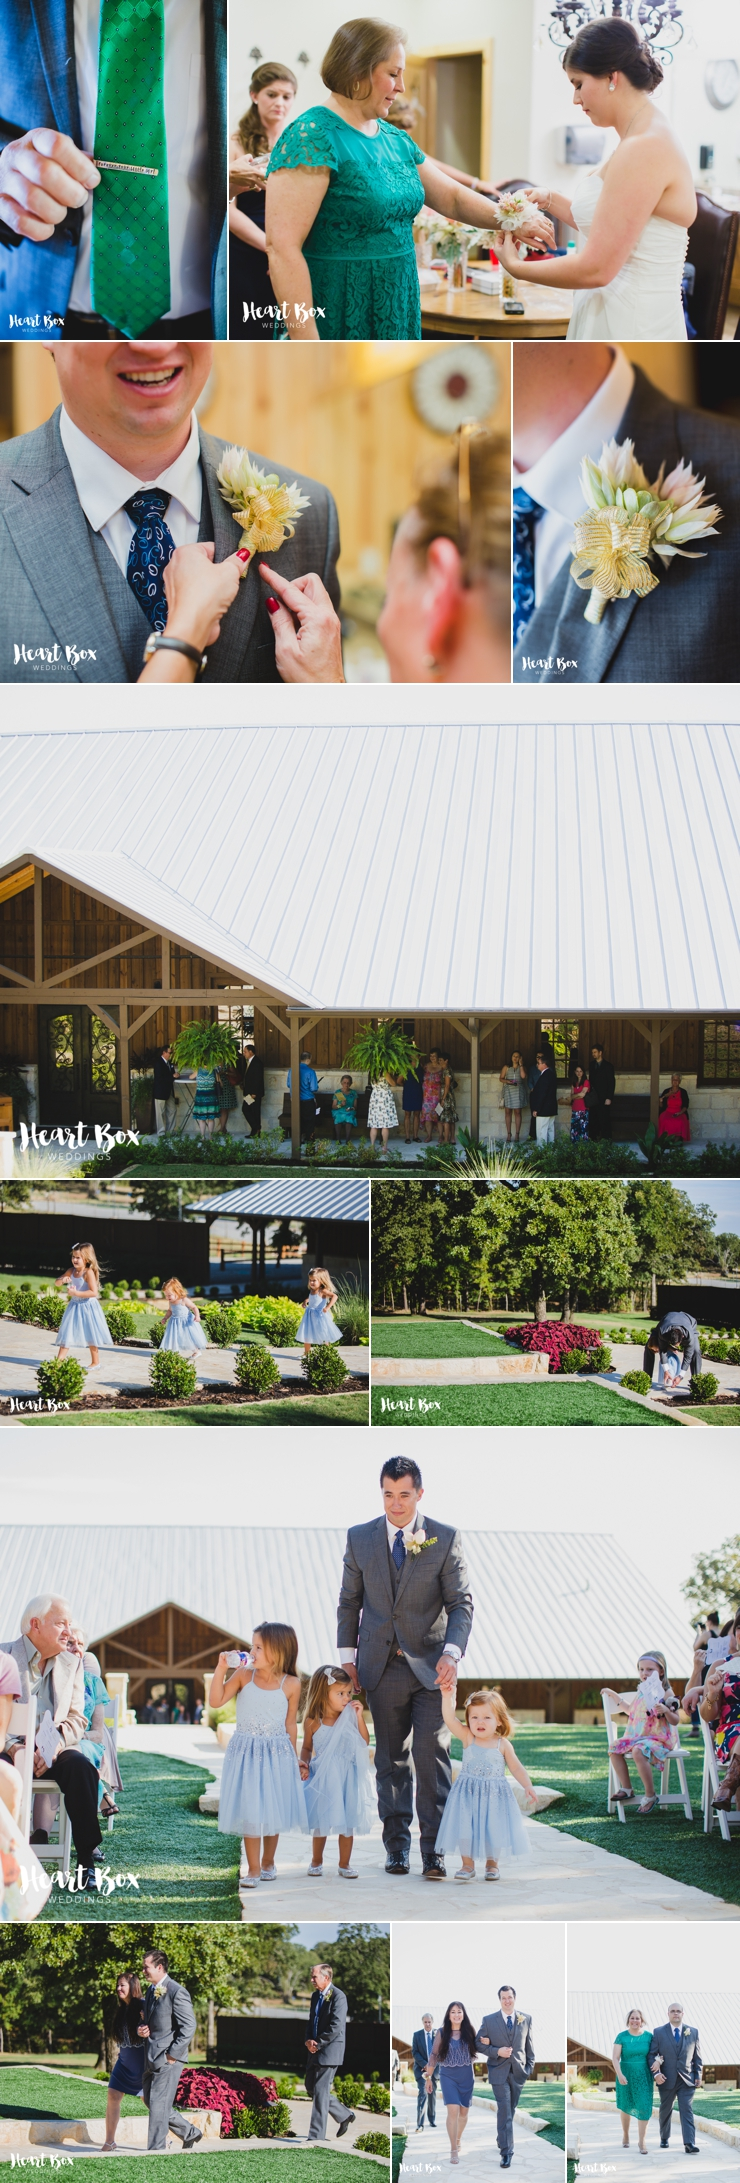 Waggoner Wedding Collages 6.jpg